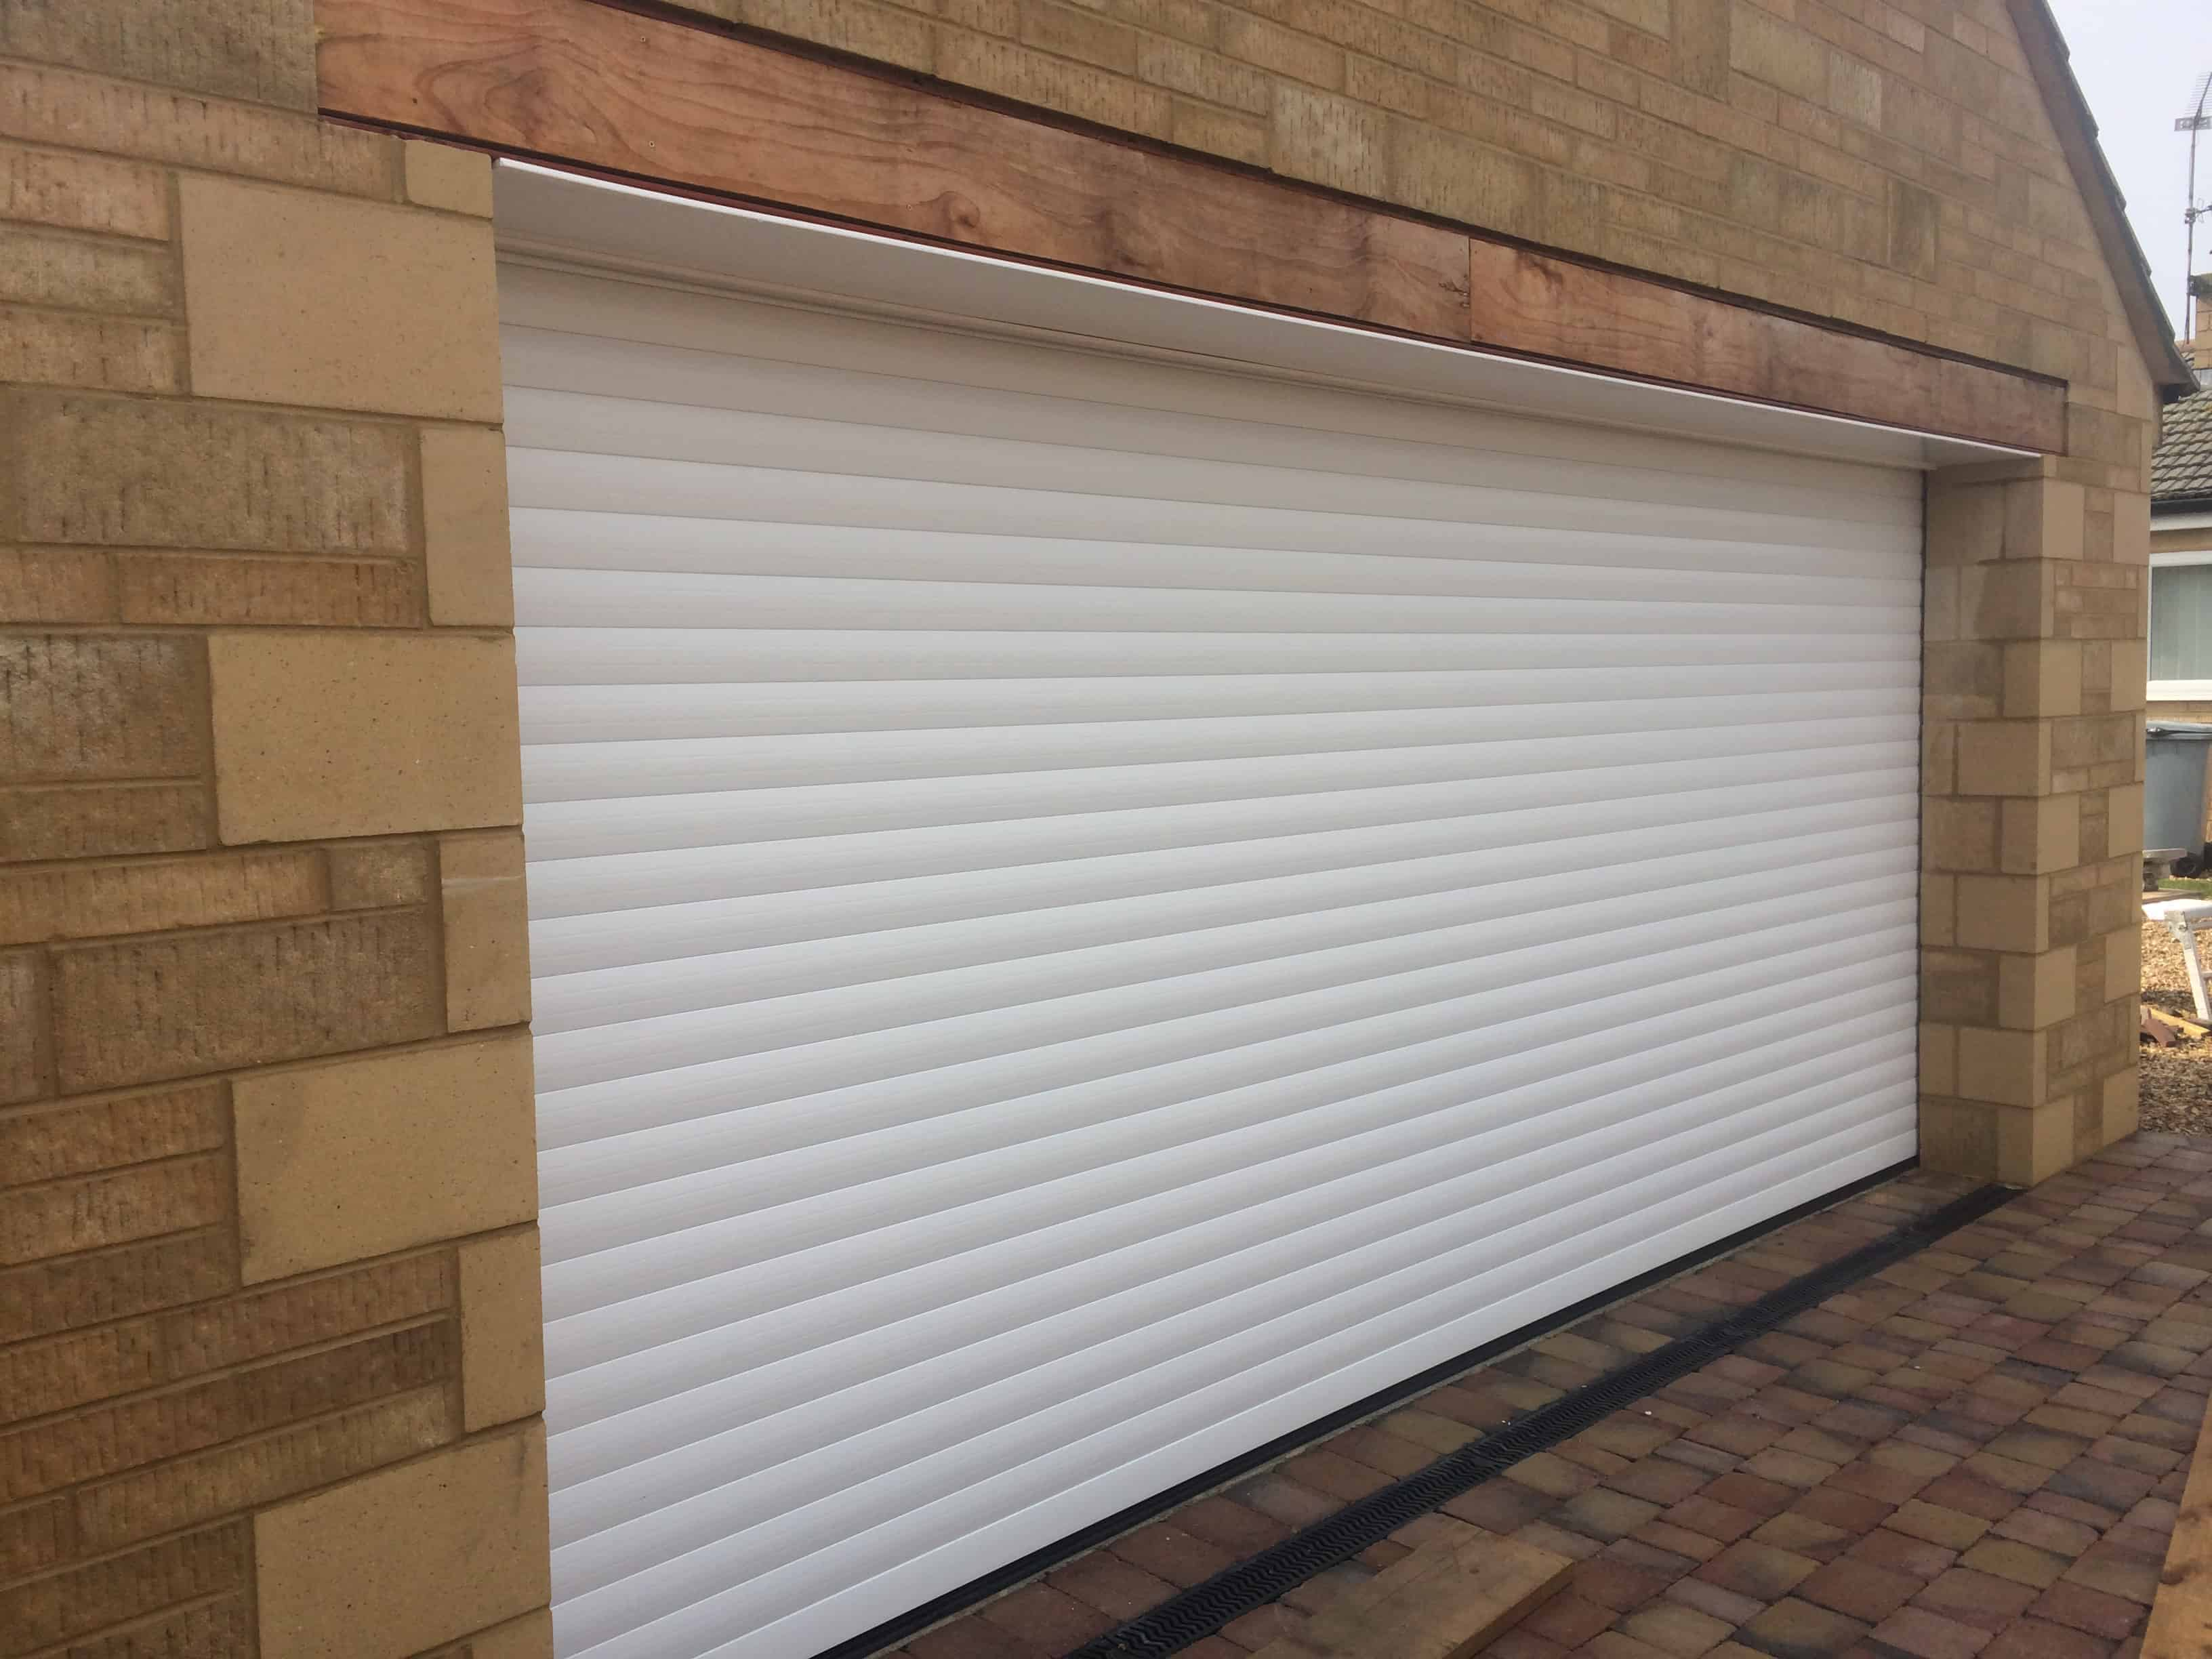 Acampo CA Garage Door Repair & Replacement